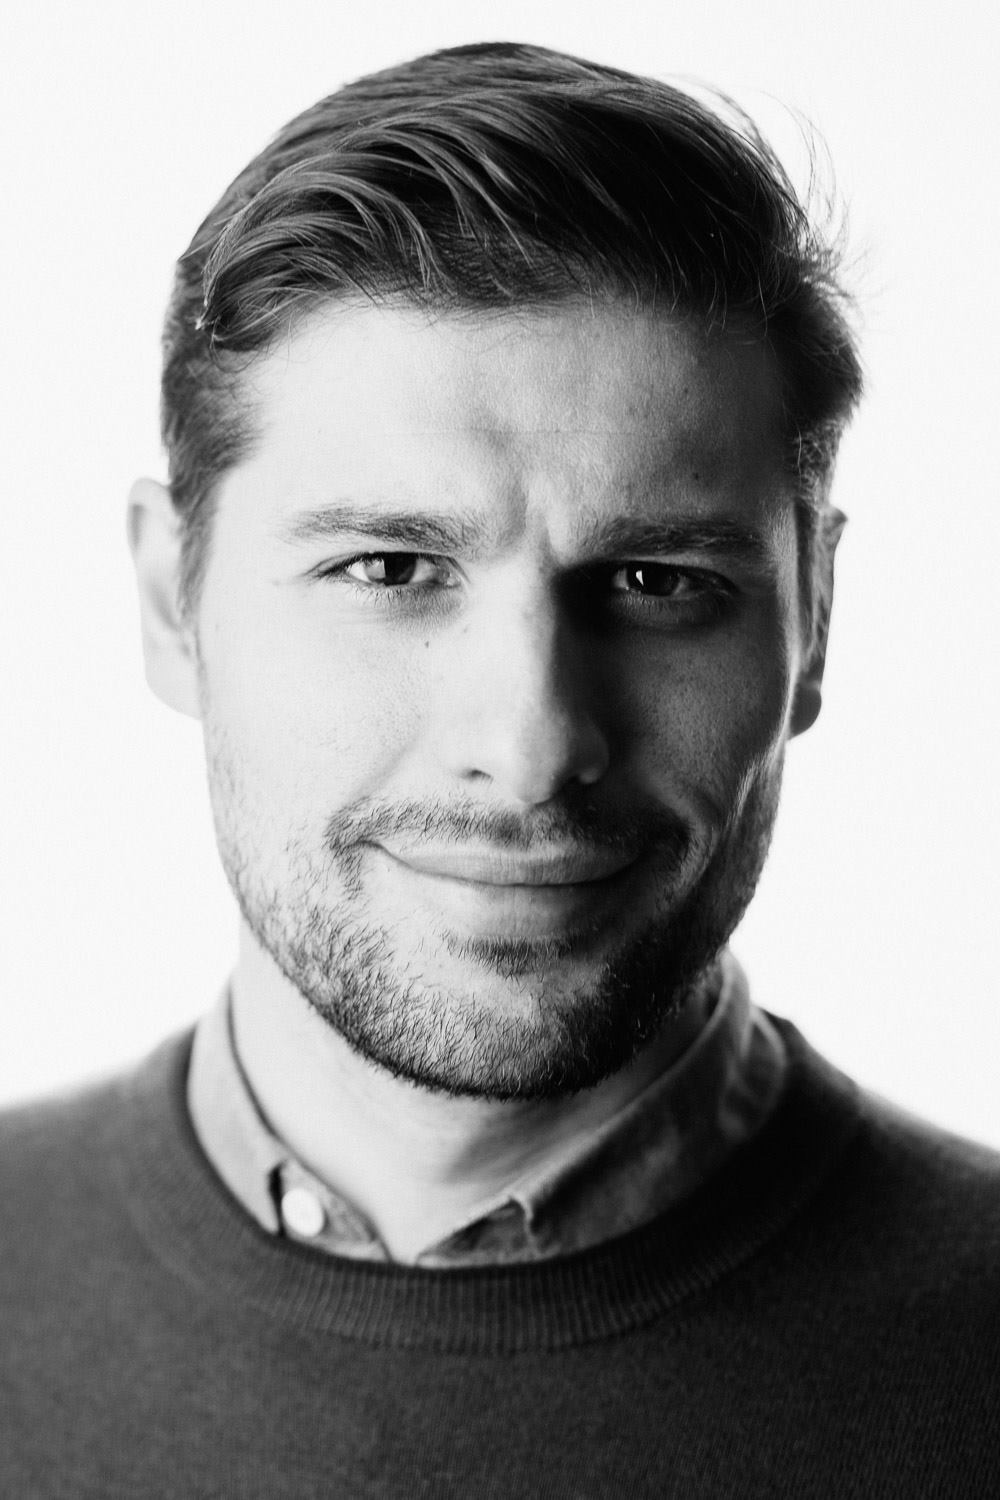 Matteo Zambolo - Gallery Manager & Researcher